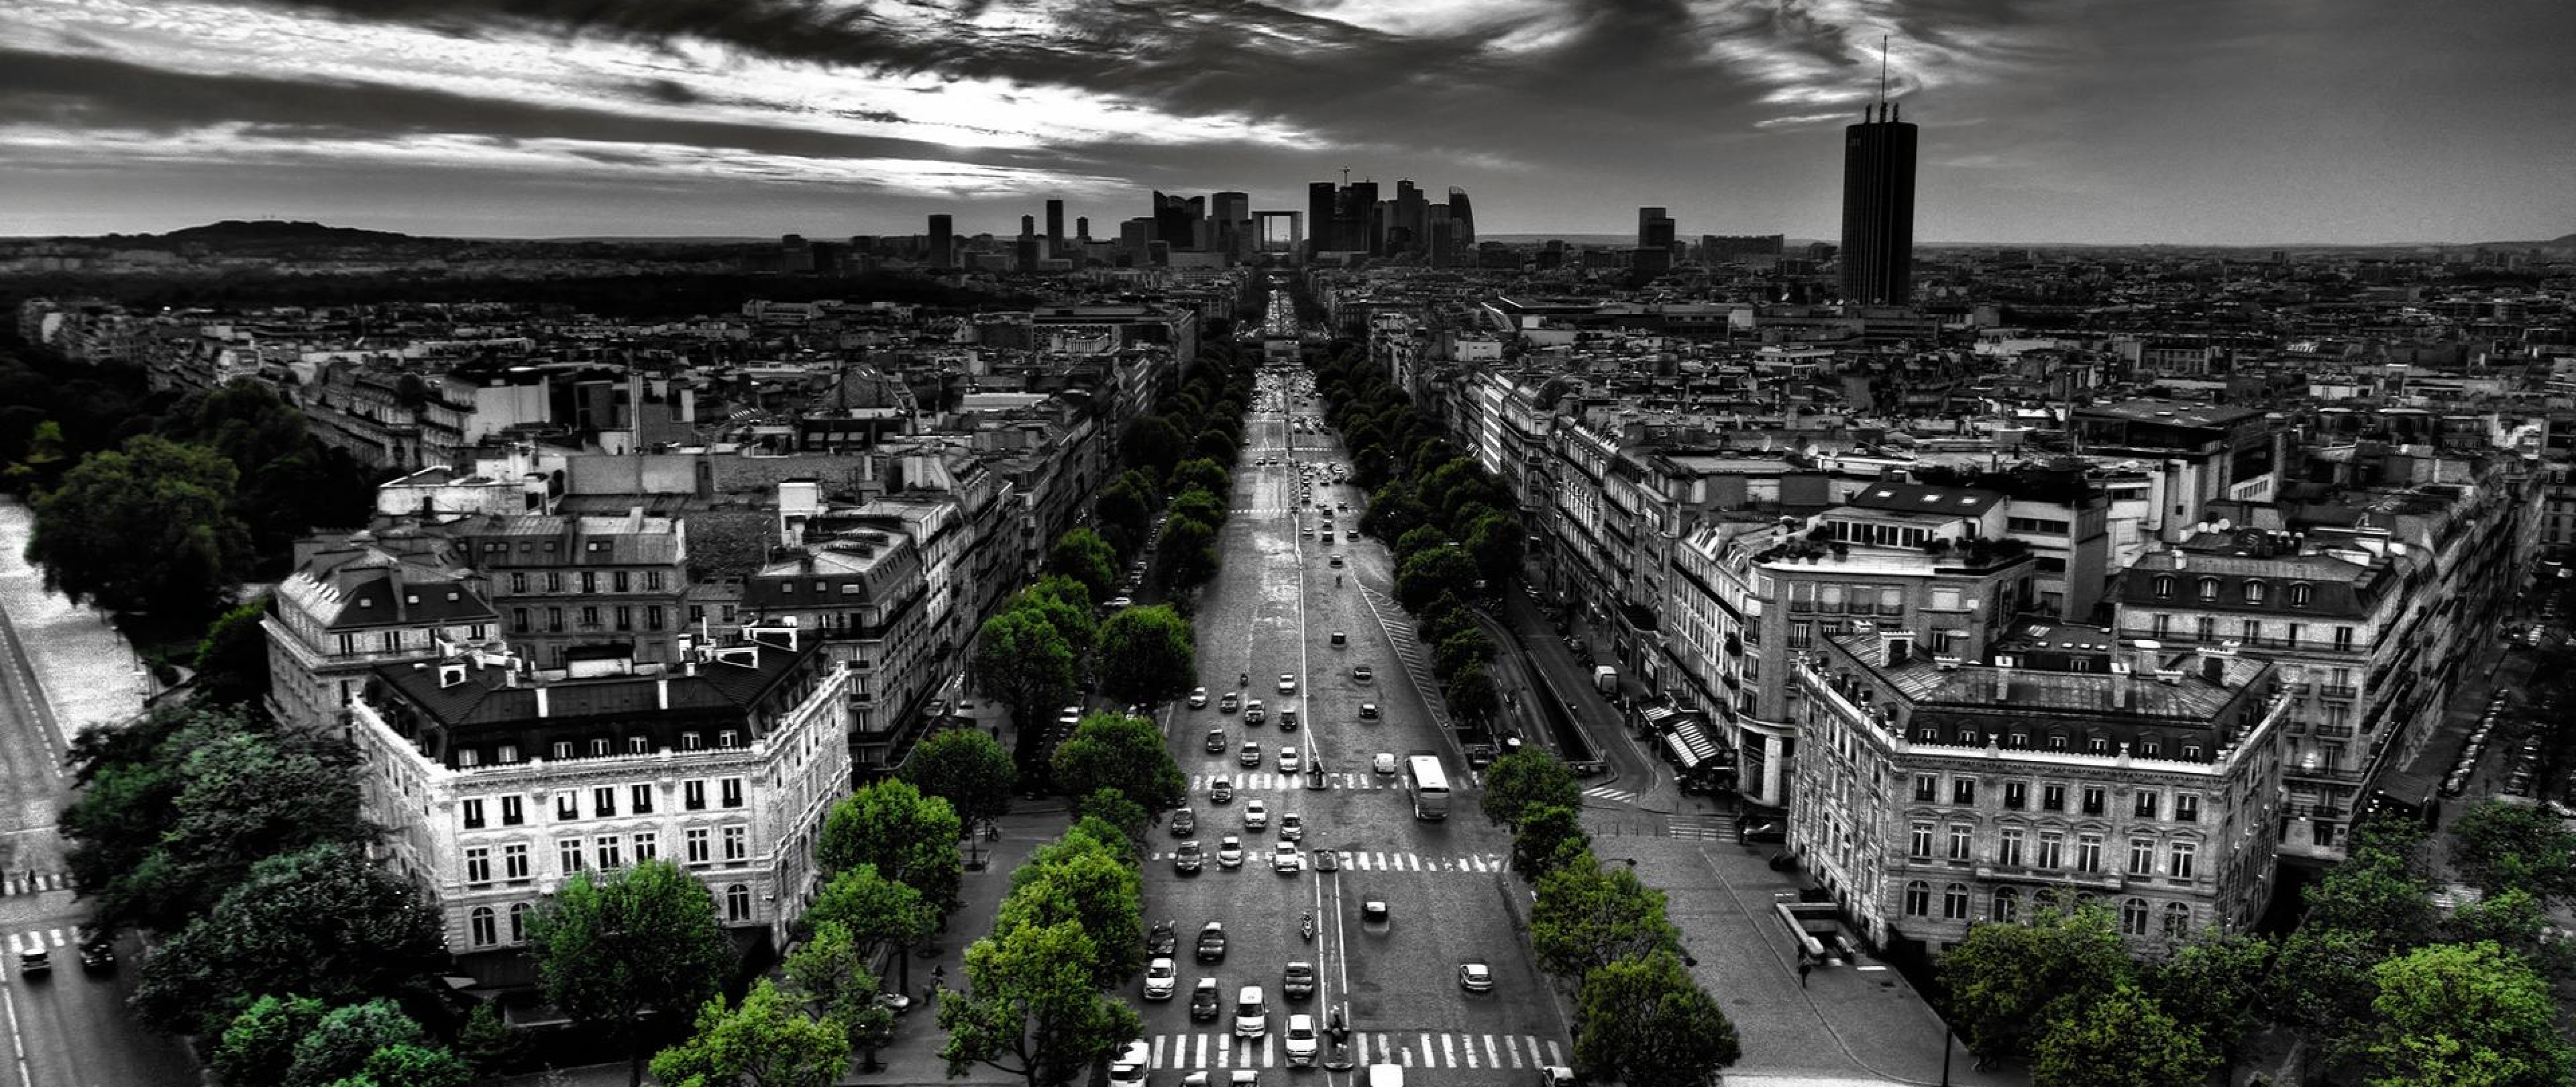 Cityscape Paris Hd Wallpaper 4k Ultra Hd Wide Tv Hd Wallpaper Wallpapers Net